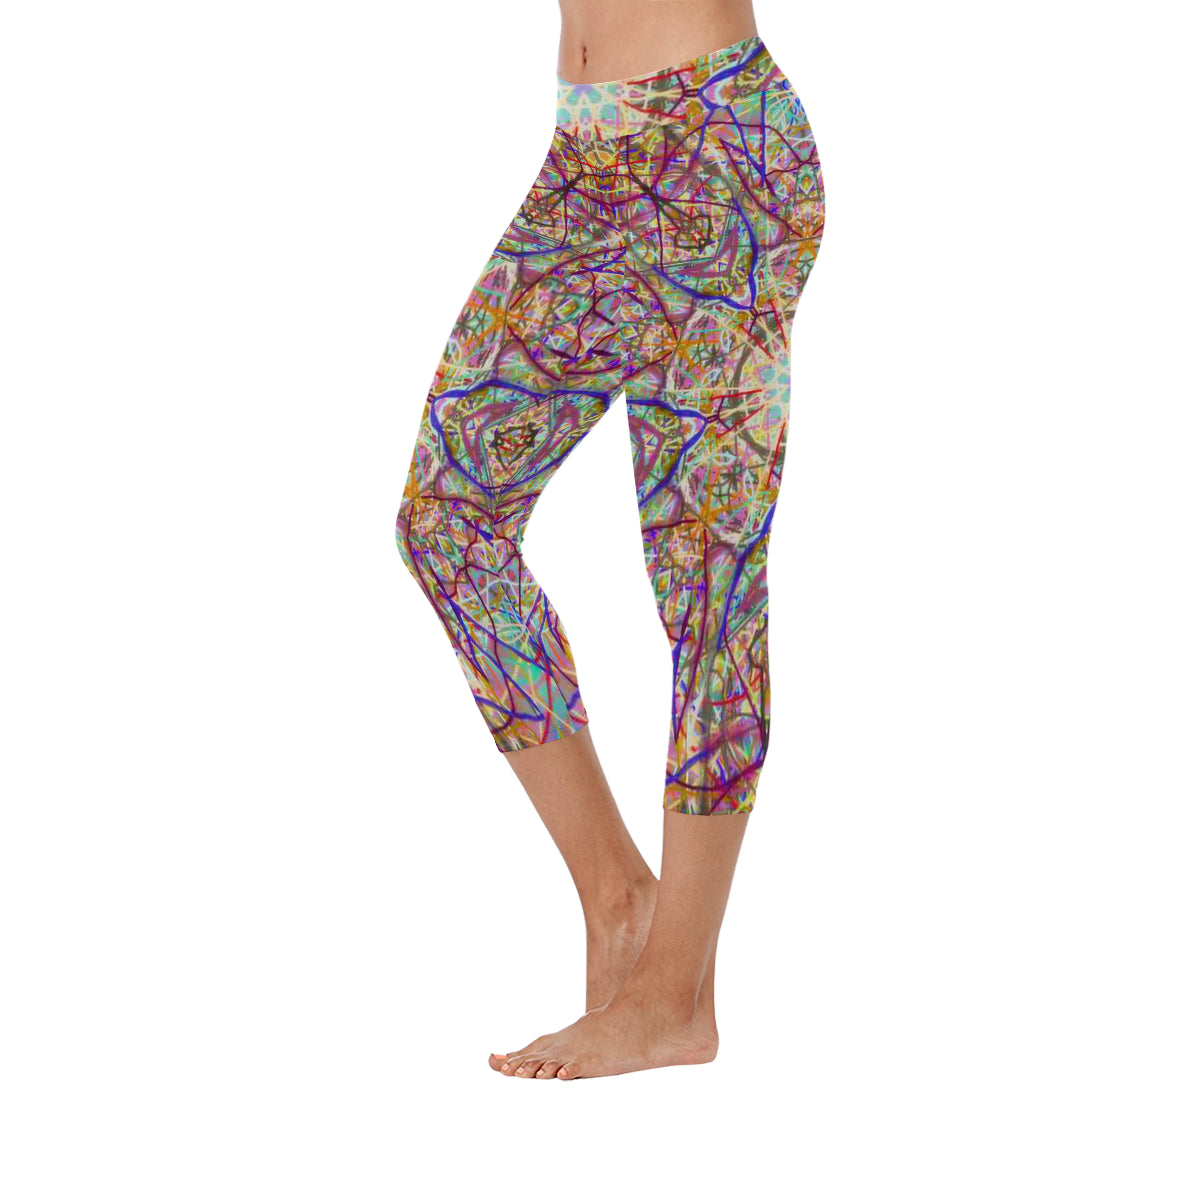 Thleudron Singularity New Low Rise Capri Leggings (Flatlock Stitch) (Model L09) - Thleudron